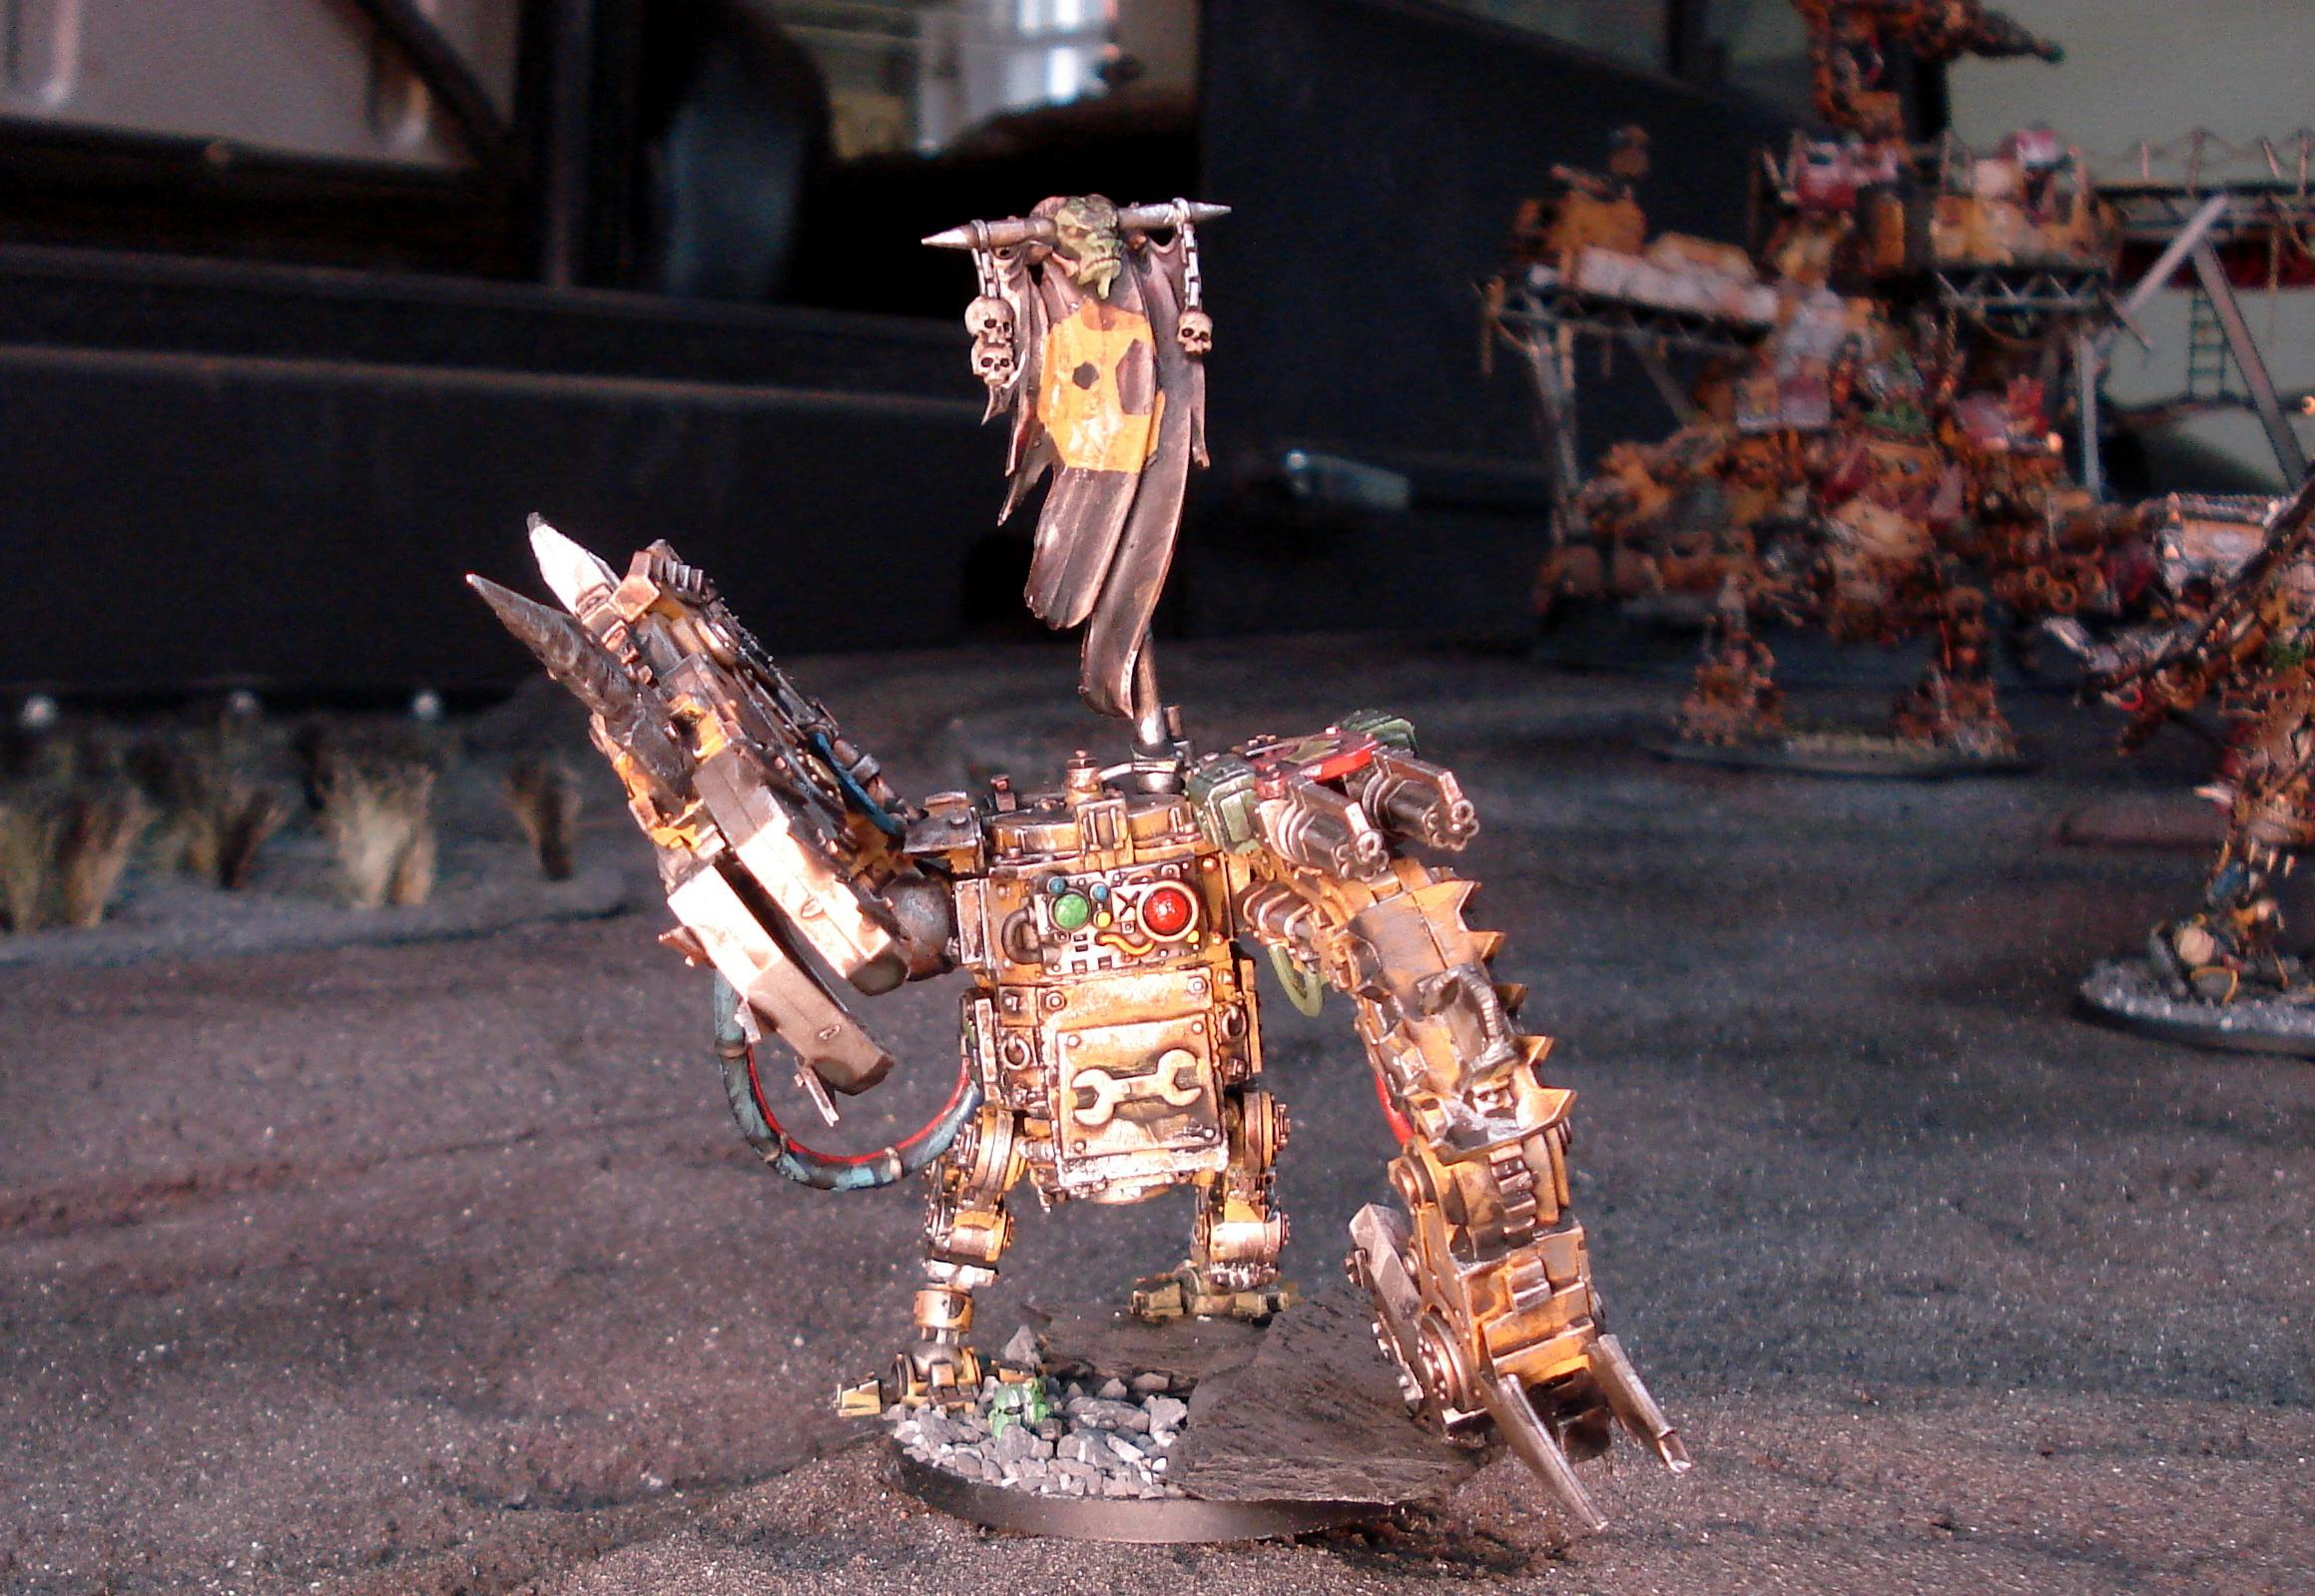 Apocalypse, Bad, Claw, Comission, Crew, Custom, Deff, Defilier, Dreadnought, Field, Force, Kustom, Looted, Mob, Moons, Orks, Scrap, Space, Space Marines, Trukk